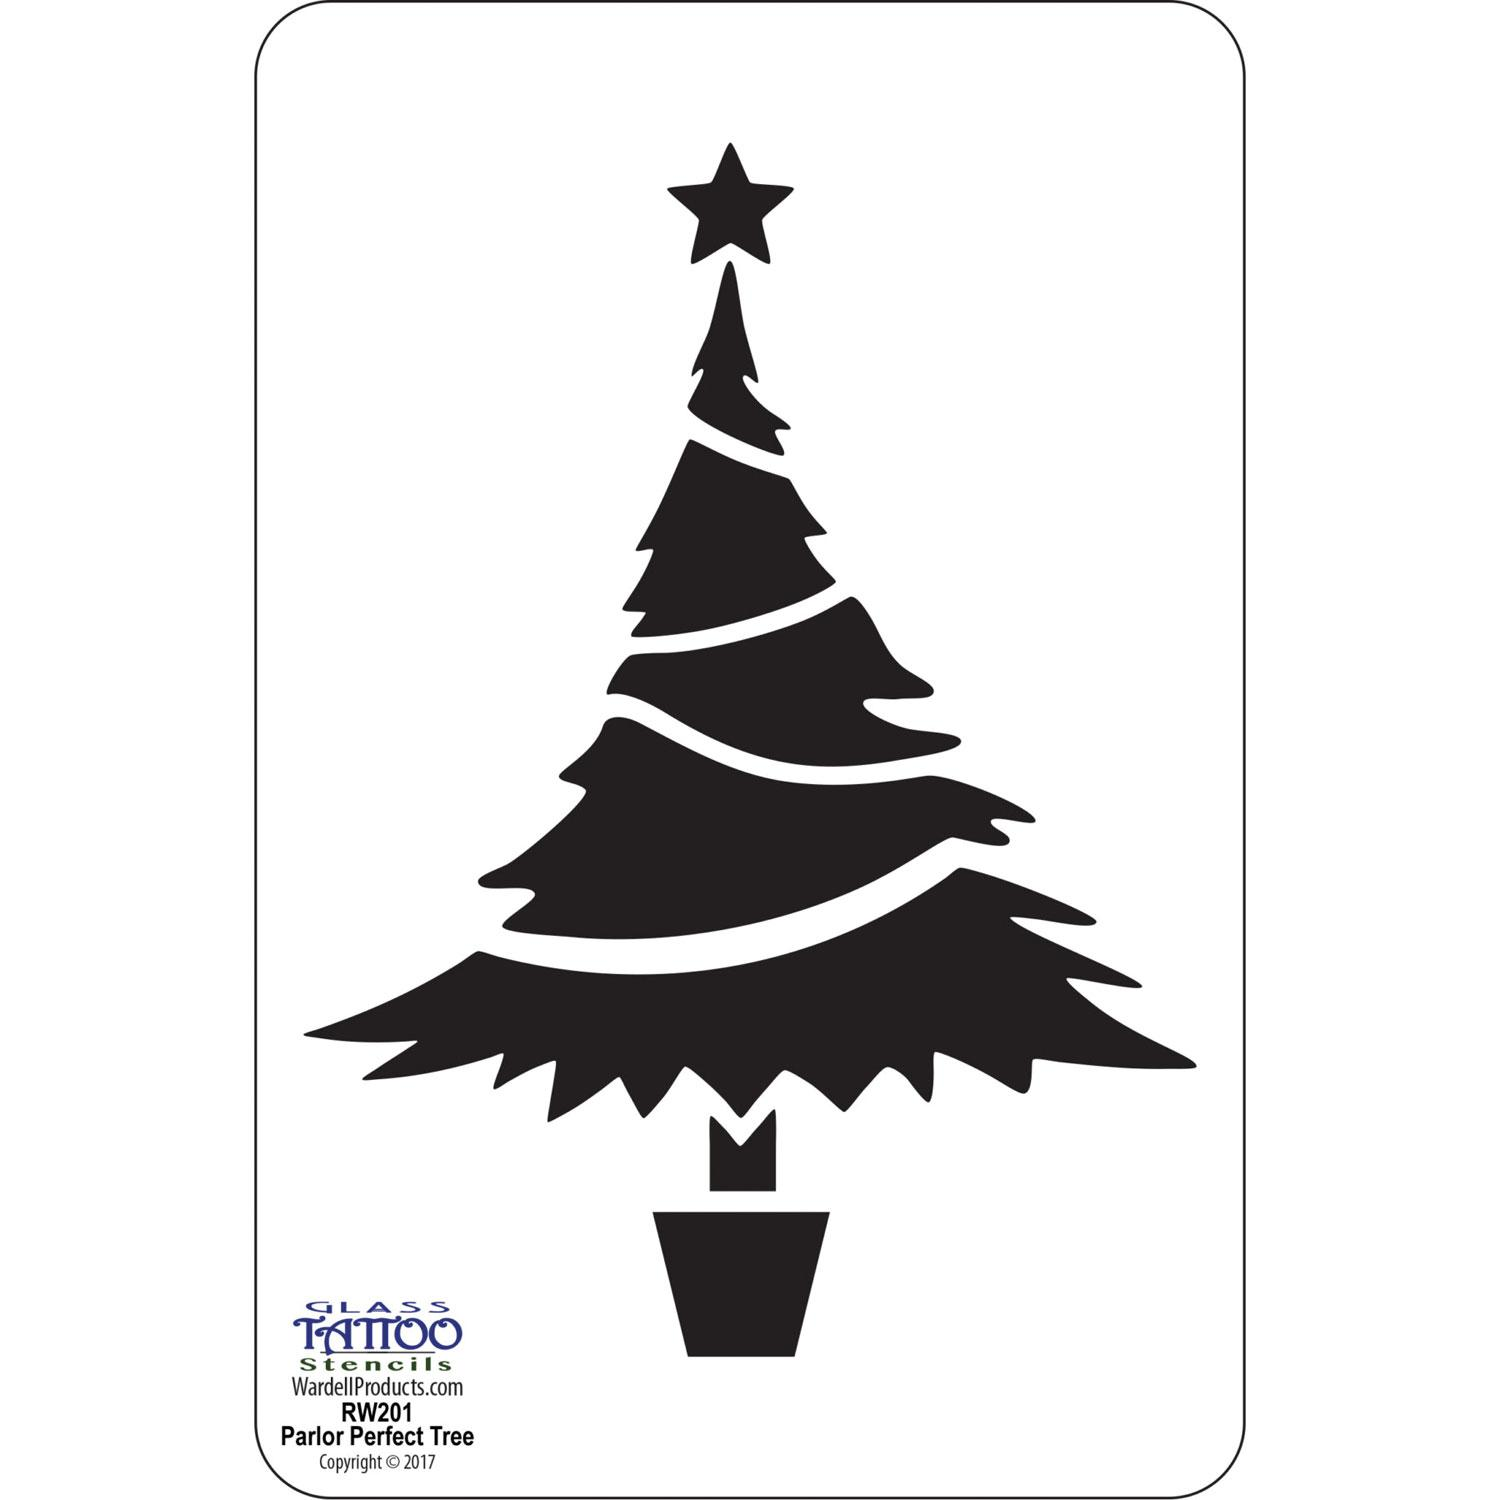 Parlor Perfect Christmas Tree Acrylic Stencil